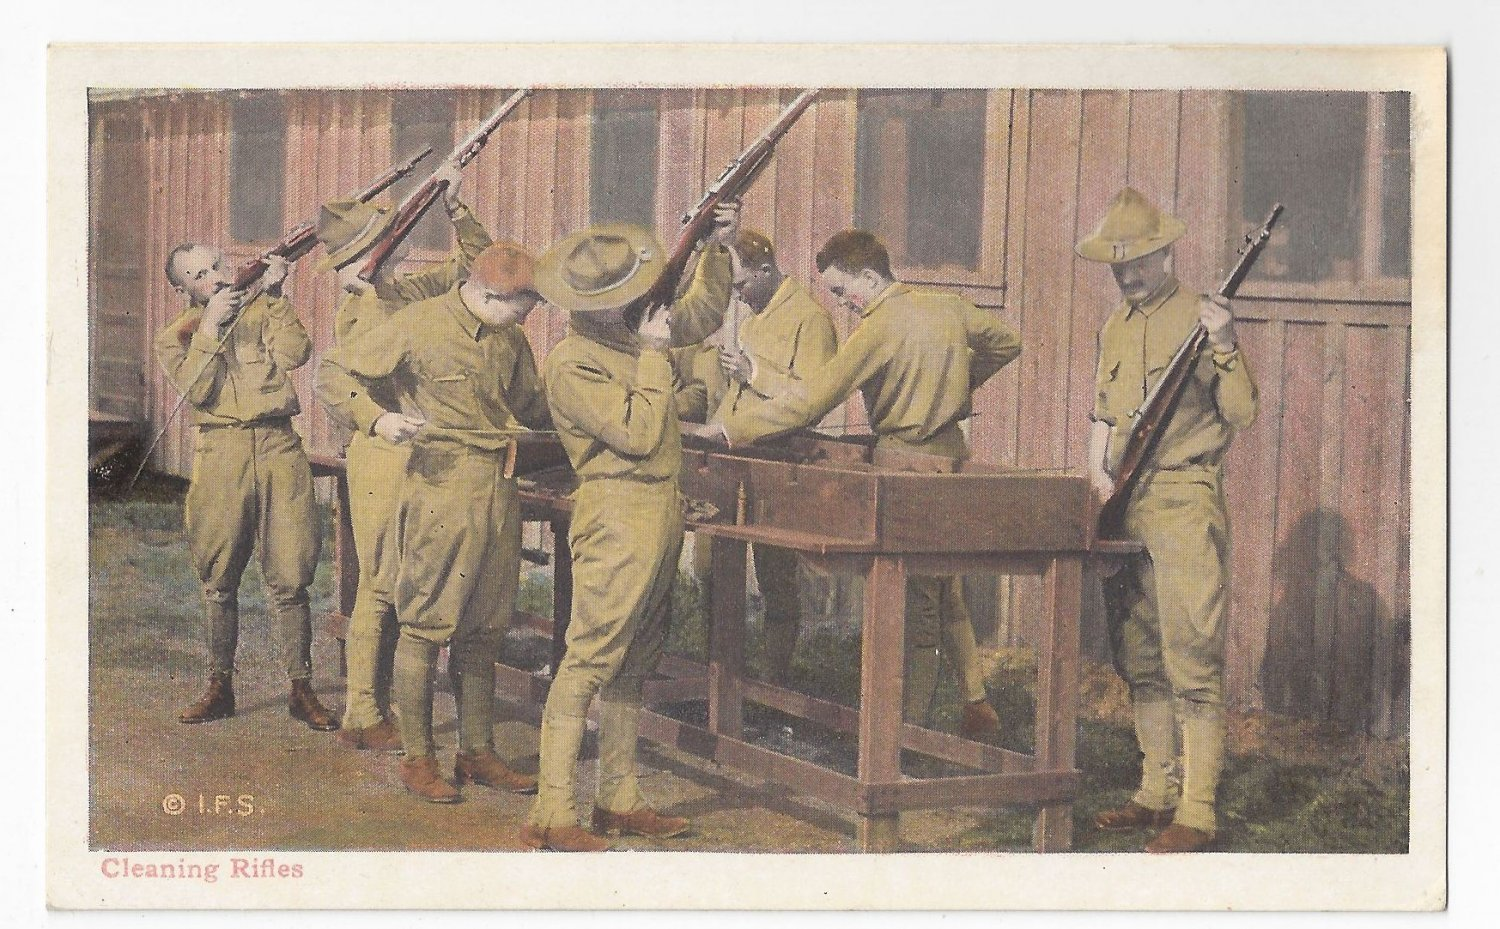 Military WWI Soldiers Cleaning Rifles Vintage Postcard